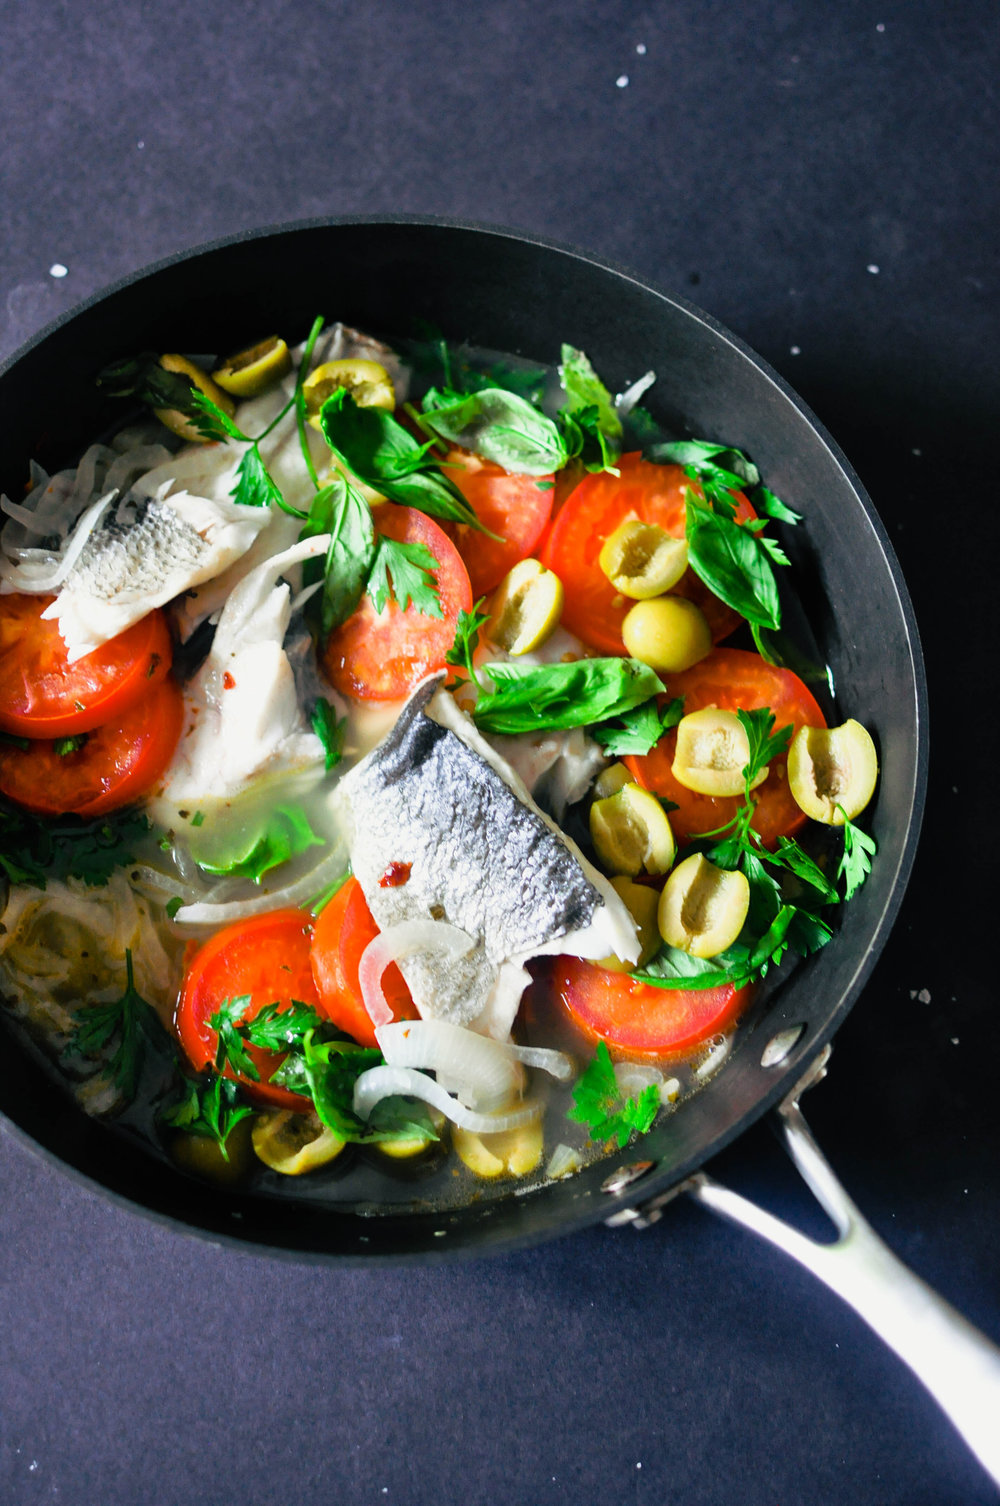 Poached Sea Bass from This Healthy Table. Get the recipe here. - Ready in just a few minutes, this poached sea bass recipe is going to be one of your favorites.